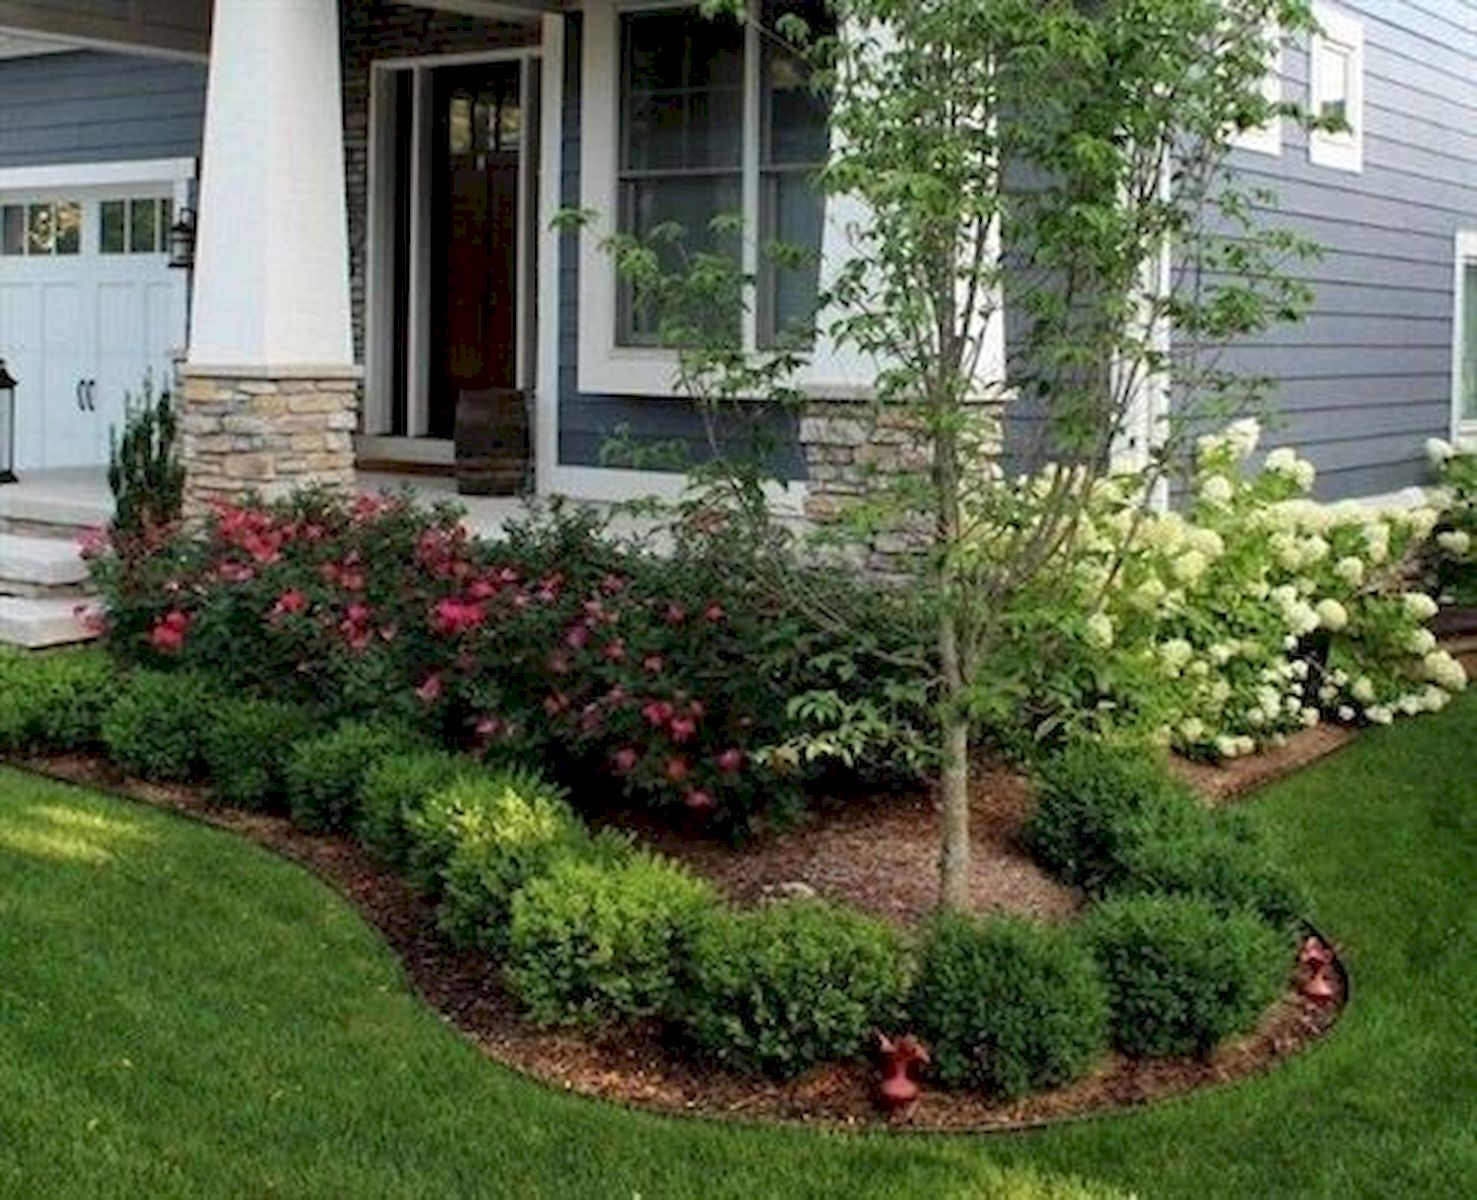 48 Stunning Front Yard Landscaping Ideas That Make Beautiful Garden (11)